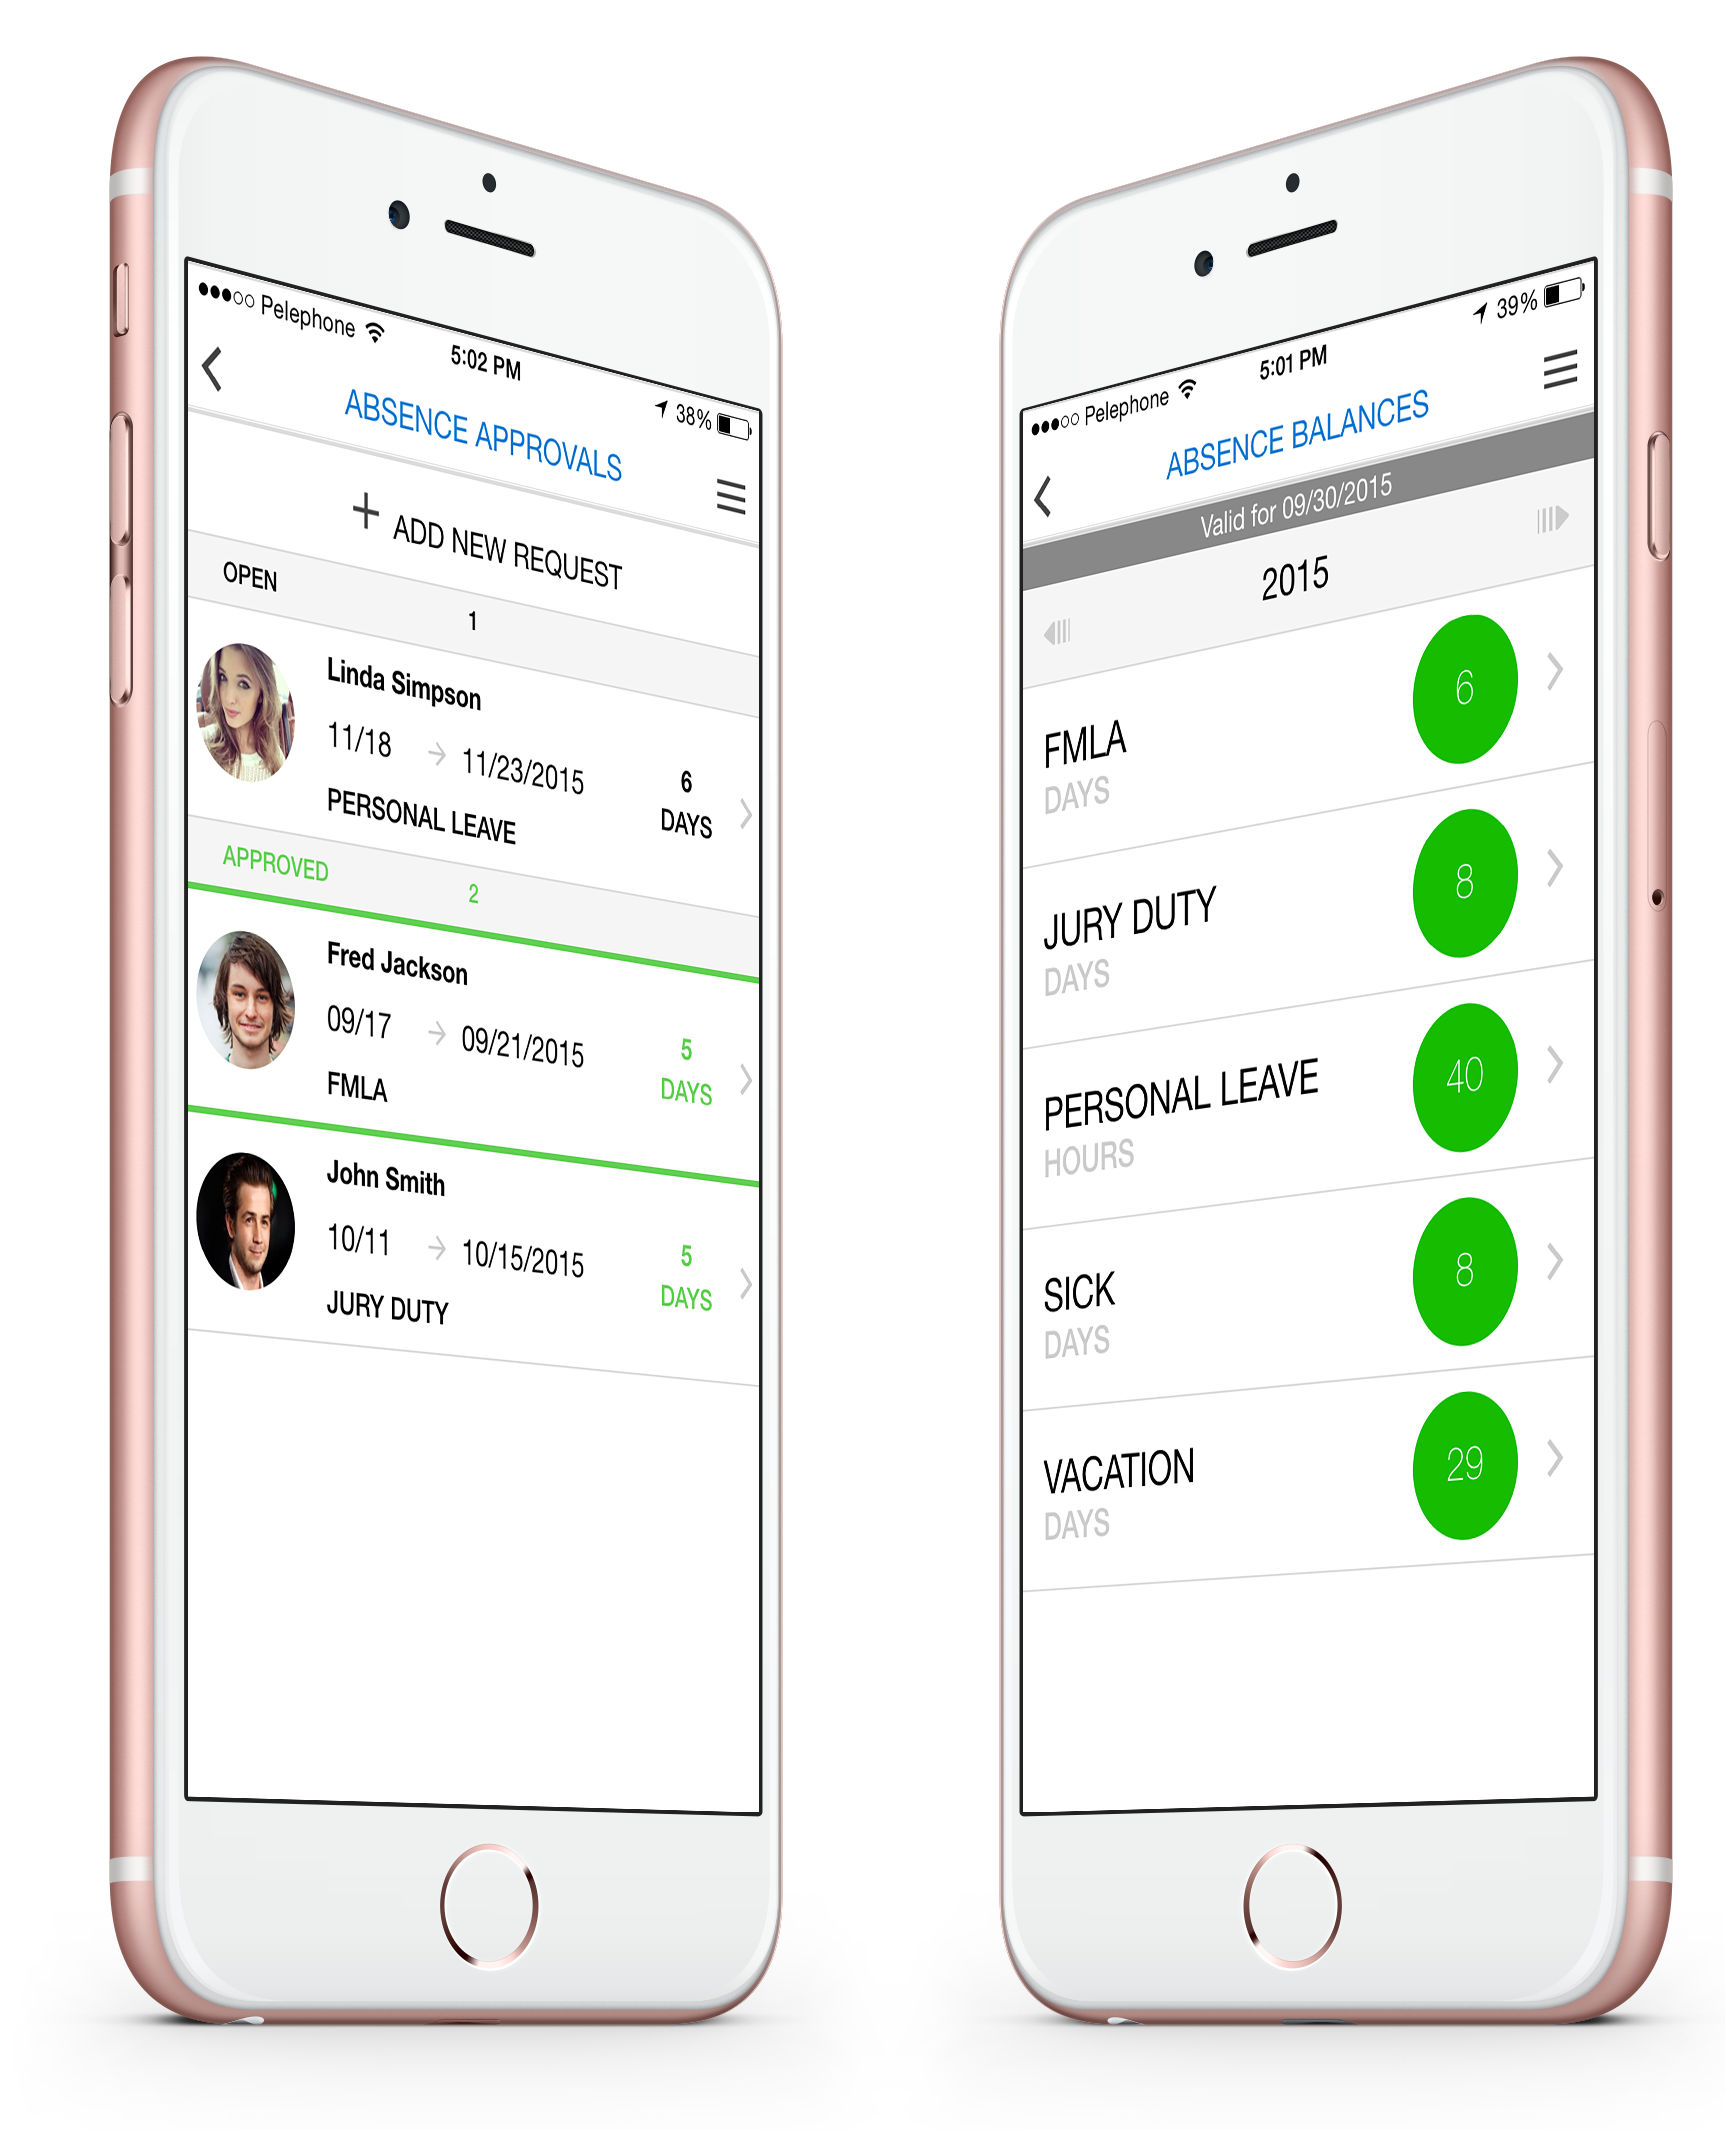 Synerion Software - Synerion Mobile- Absence approval for managers and absence balance page for employee.